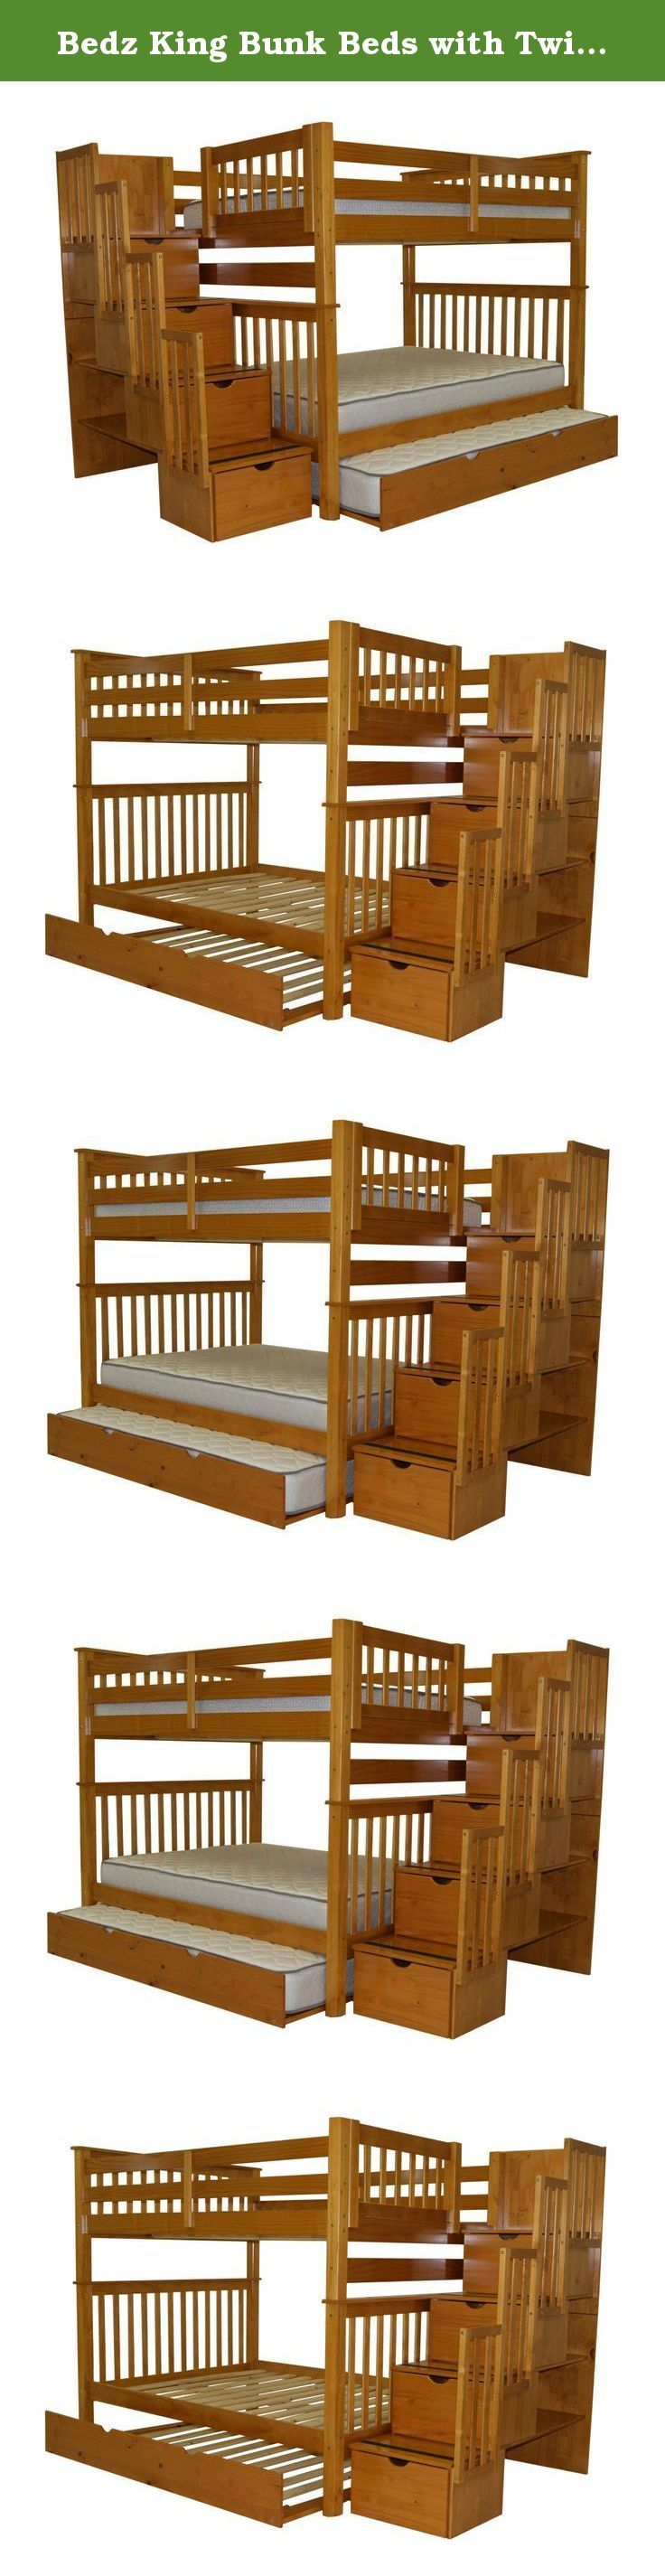 Bedz King Bunk Beds with Twin Trundle, Full over Full with Stairway, Honey. Bedz King Stairway Bunk Beds Full over Full in Honey with Twin Trundle   Bunk Bed converts to 2 Full Beds   The Top Bunk Foot Board will have the gap that is the entryway for the Stairway   Finish is child-safe   Solid Brazilian Pine - no particle board or mdf   No need for a bunkie board or a bunkie mattress as this bunk bed comes with a complete set of slats   Assembly required with included tools   SALE IS FOR...